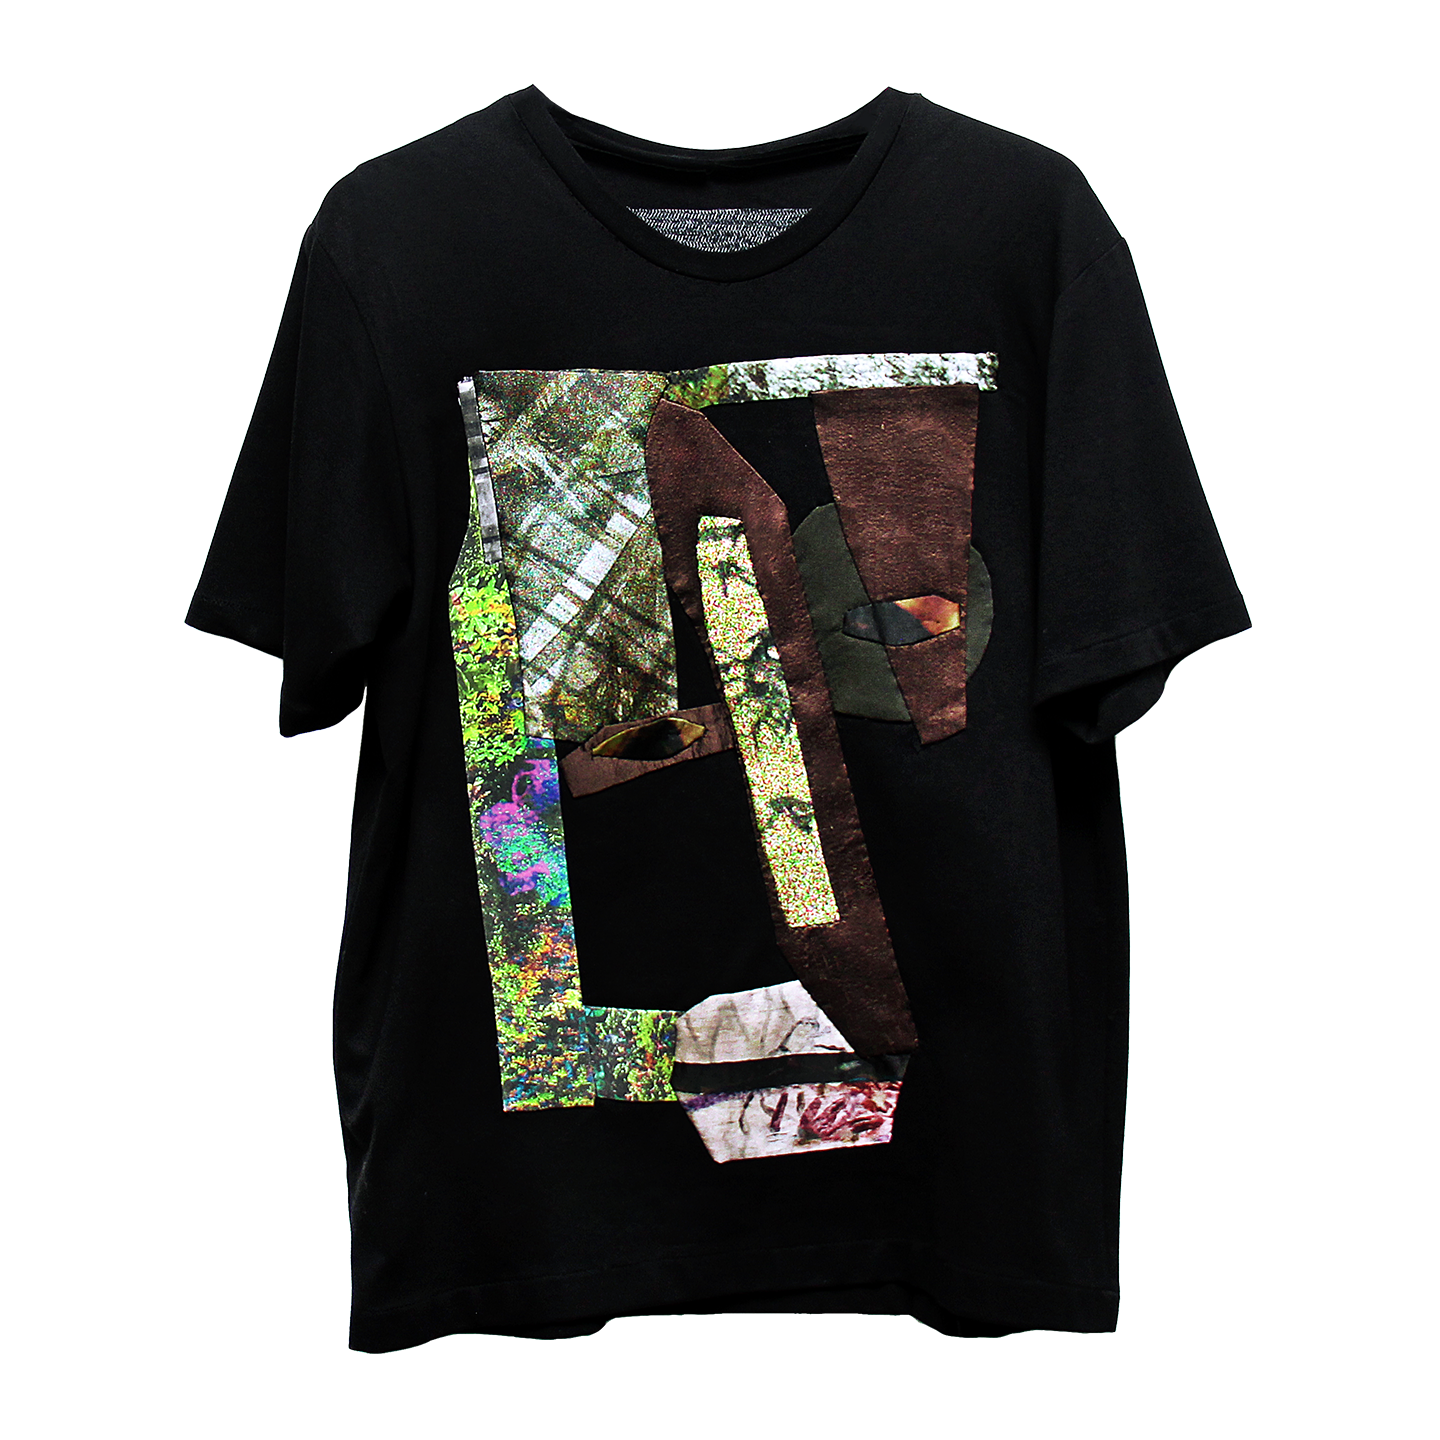 SENTIENT_tshirt1. - The constant ambush from lush tropical menagerie scapes drive the mentality to curate a commentary about this nostalgic effect but with a satire twist.